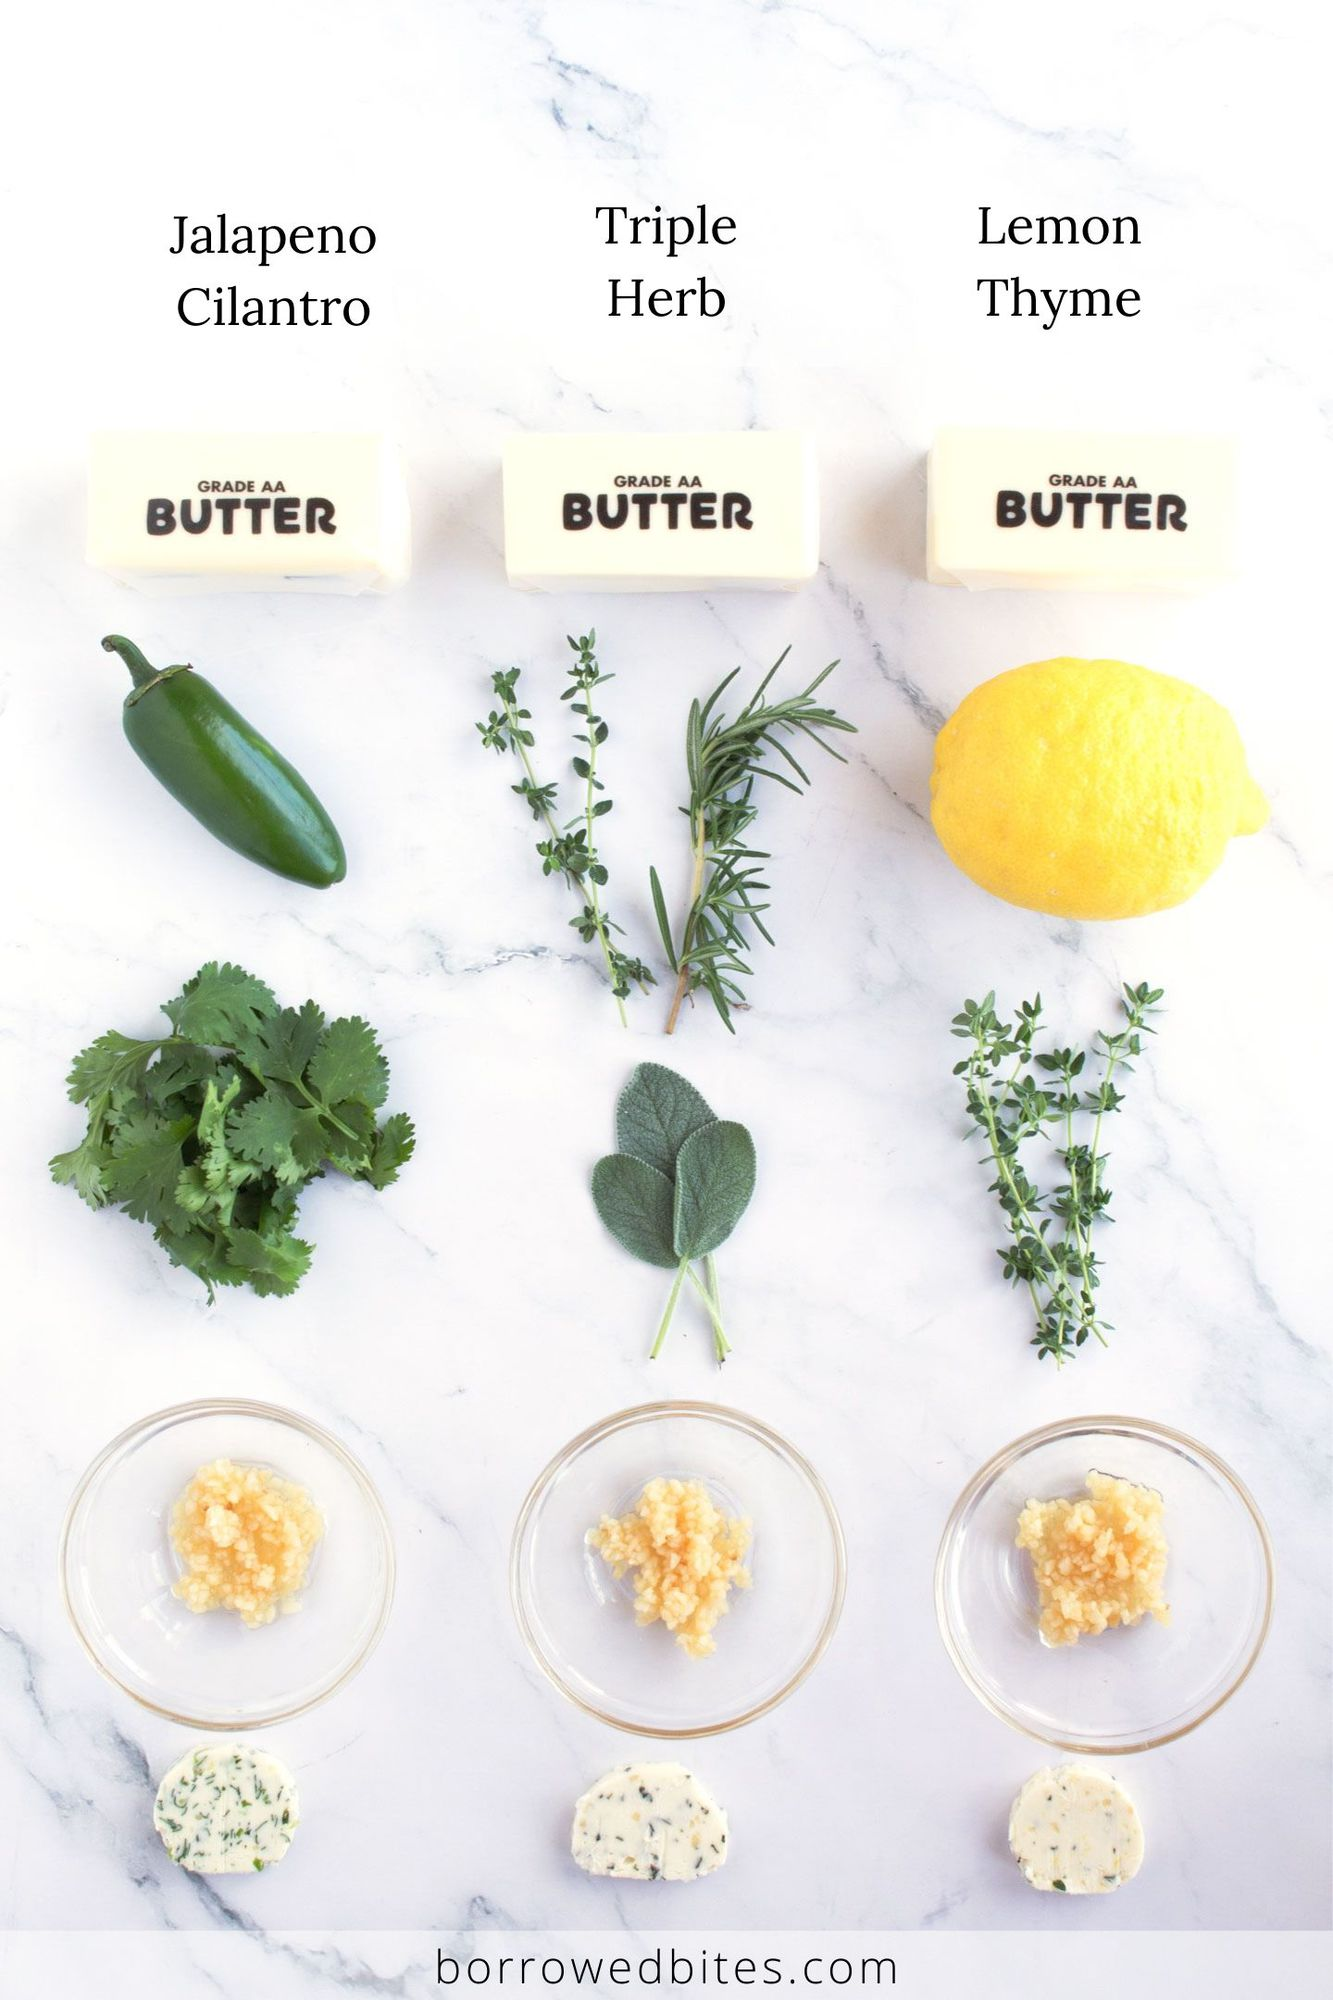 Ingredients for savory flavored butter with text overlay.